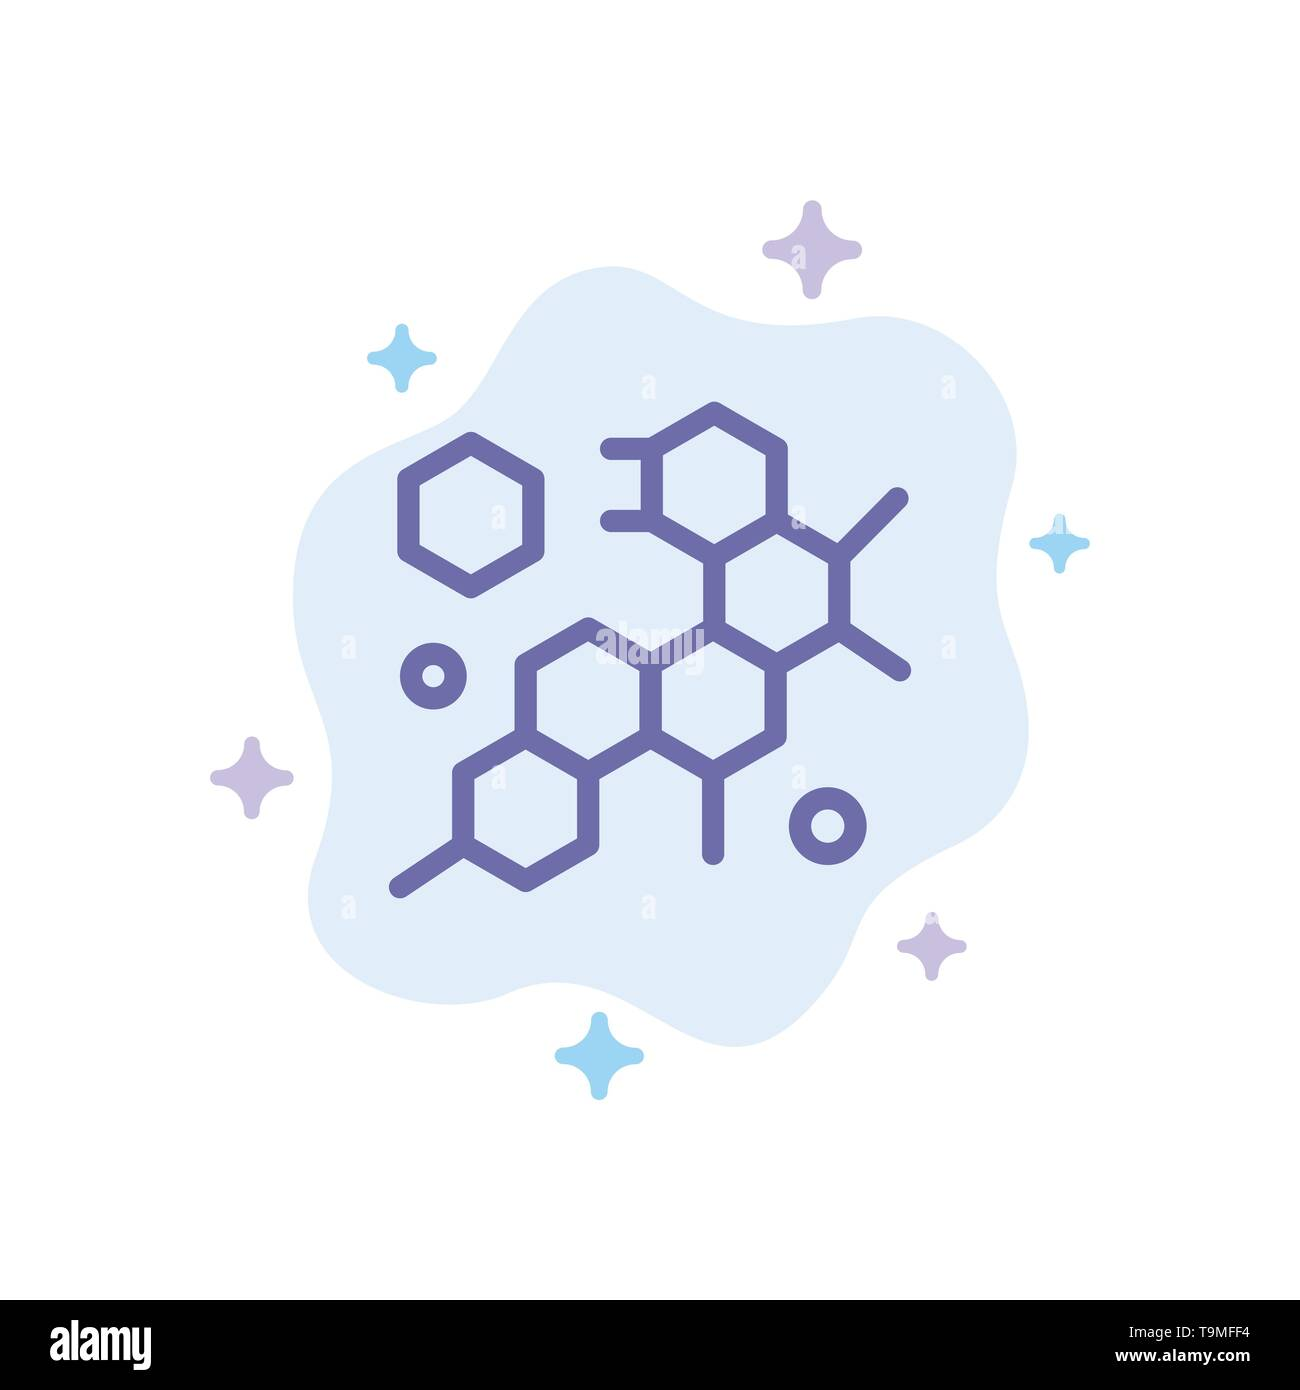 Cell, Molecule, Science Blue Icon on Abstract Cloud Background - Stock Image